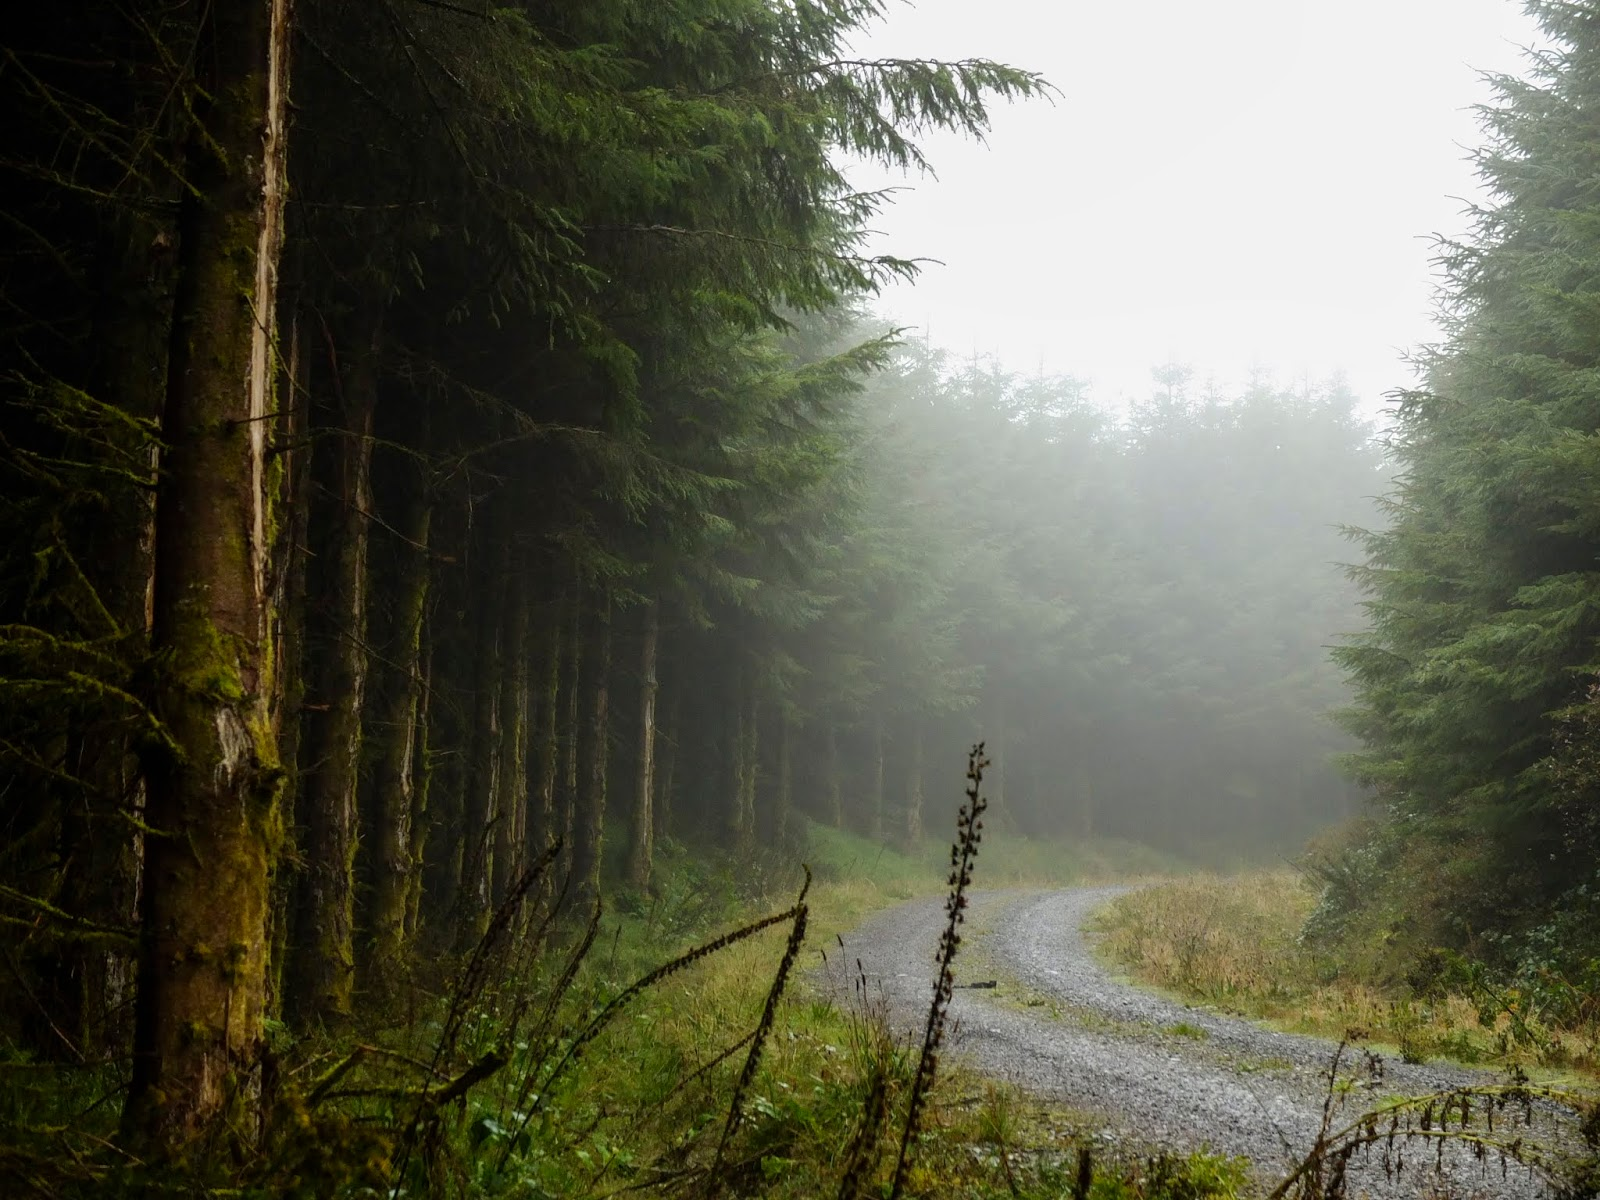 A misty and foggy curving gravel path lined with conifers.